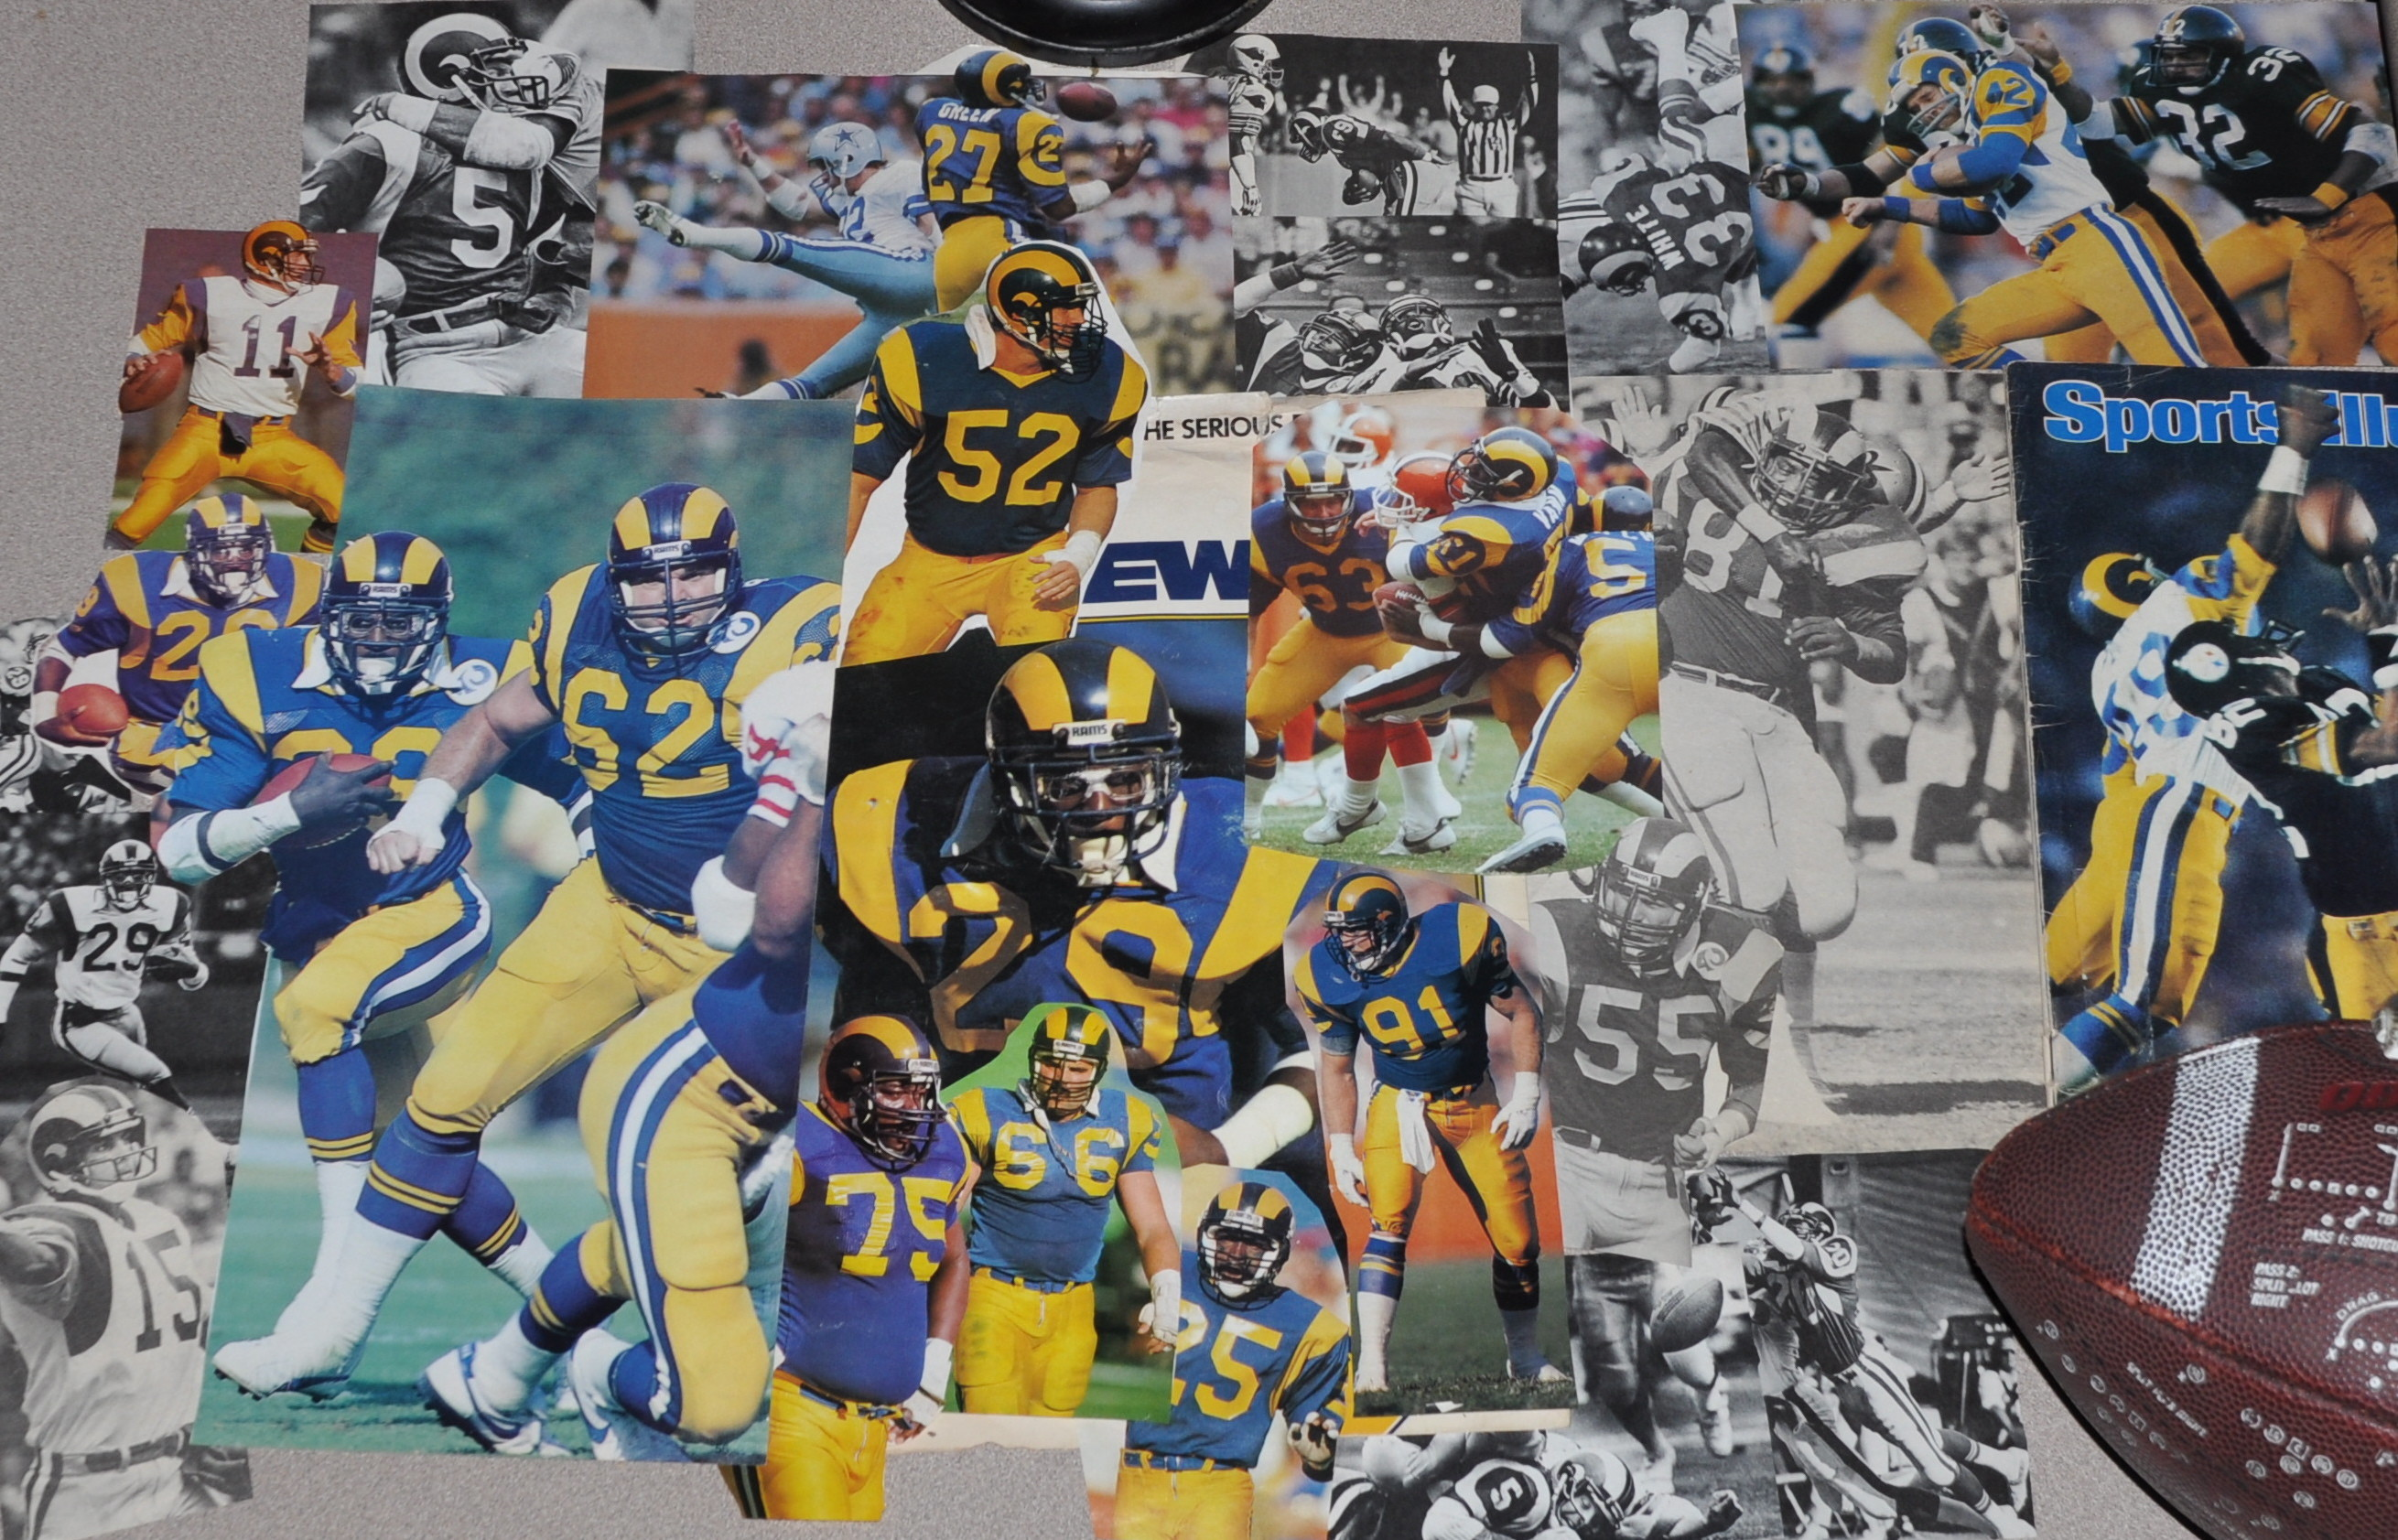 In my youth I used to clip Rams pics and use them for wallpaper in my